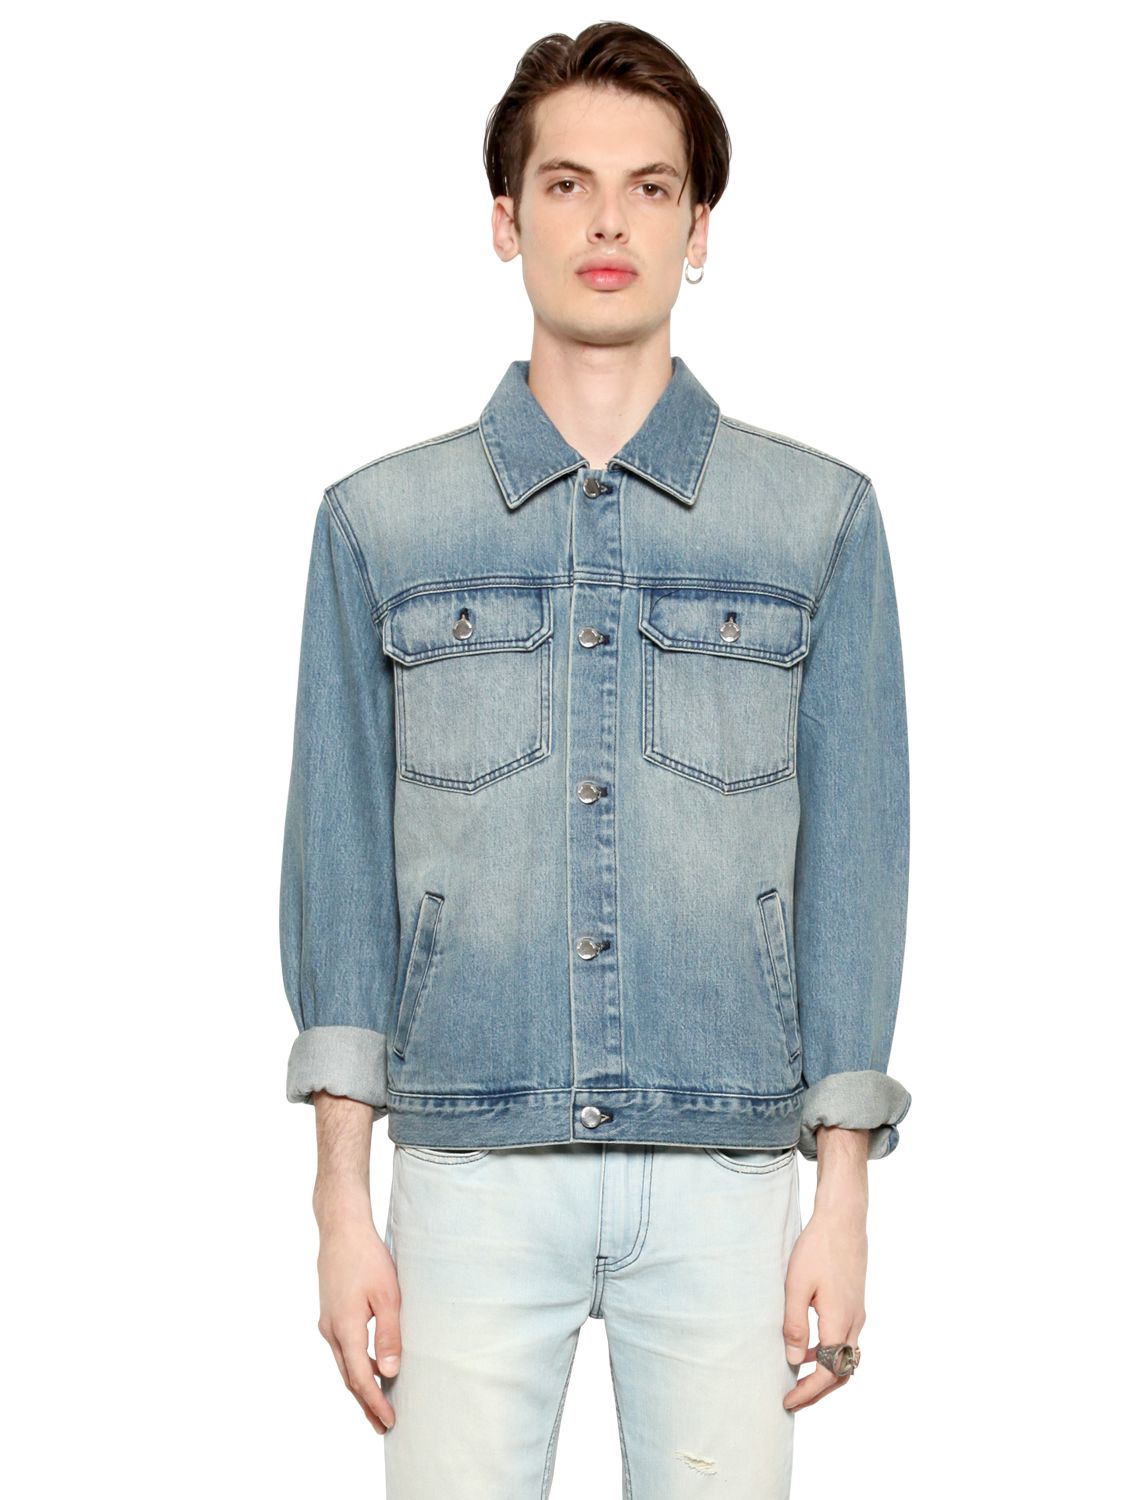 how to clean a denim jacket